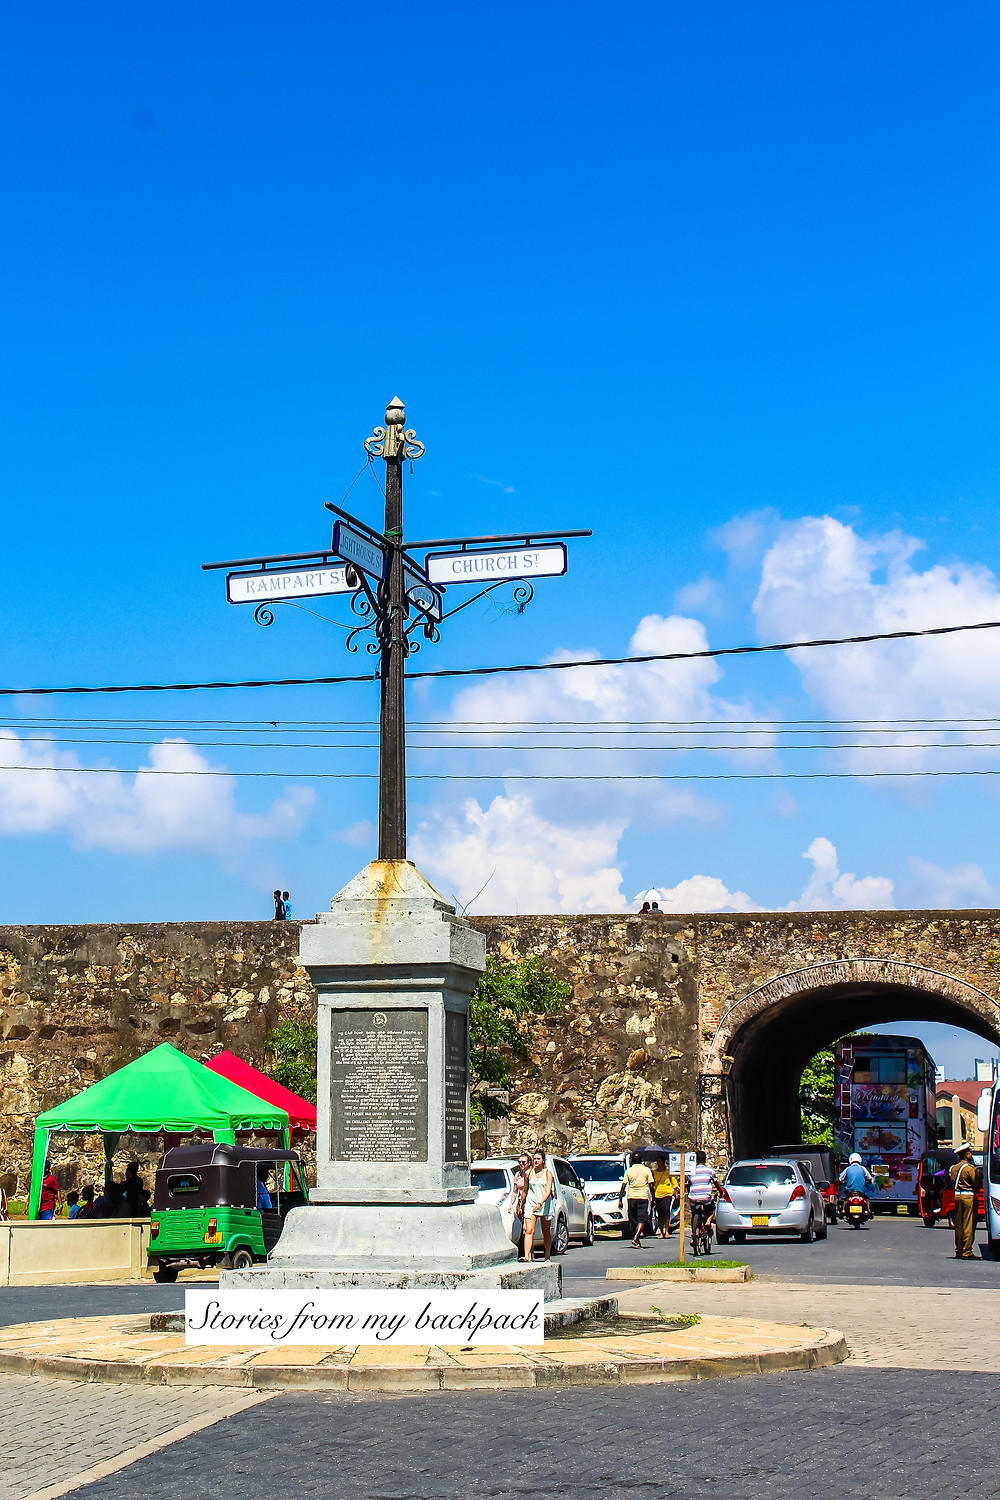 Galle, Best places to visit in Sri Lanka, Things to do in Sri Lanka, Galle sightseeing, Unawatuna beach things to do, water sports in Galle, heritage buildings in Galle, restaurants in Galle, where to stay in Galle